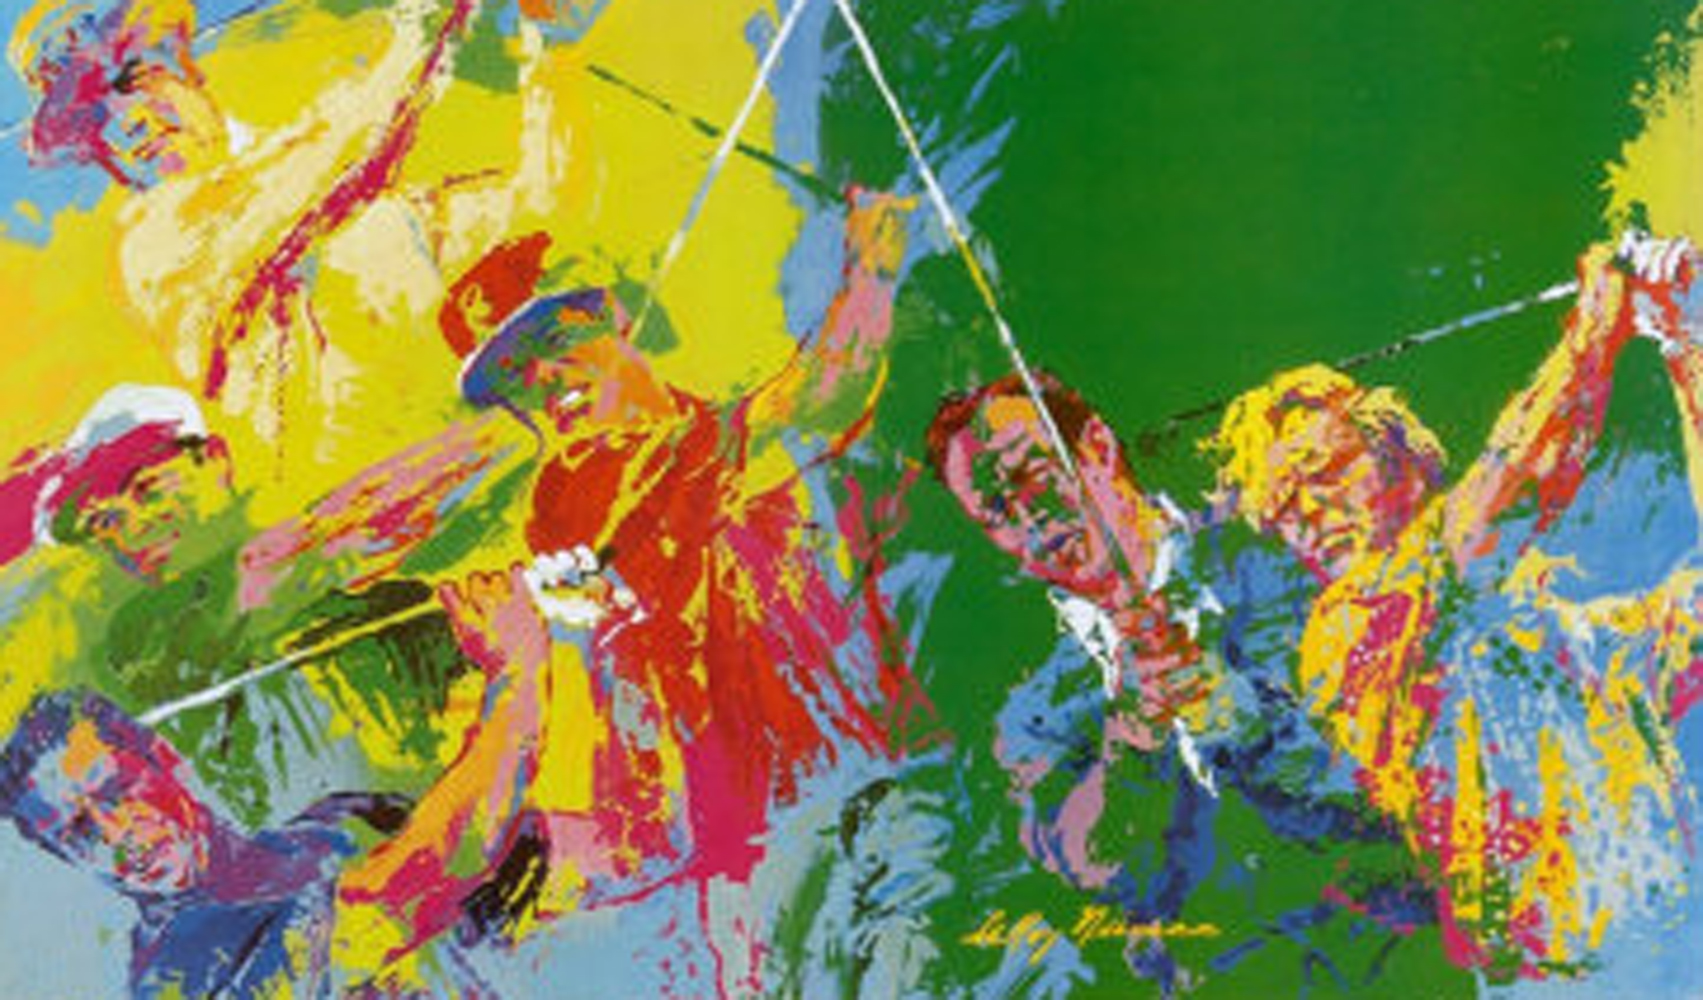 Leroy Neiman Original Paintings For Sale